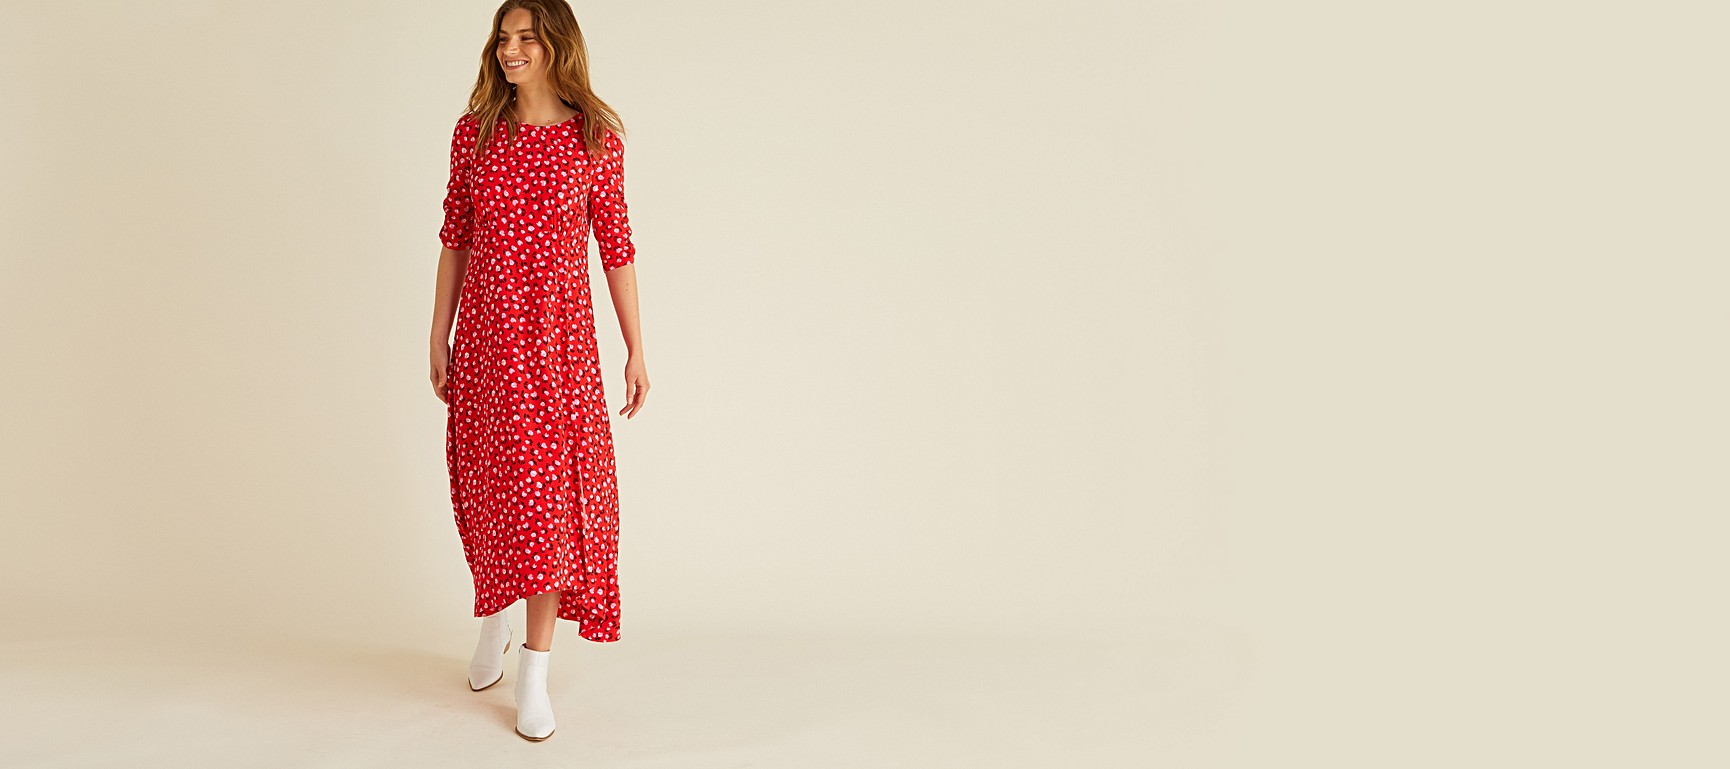 96677ff9817 Ditsy Floral Print Red Midi Dress